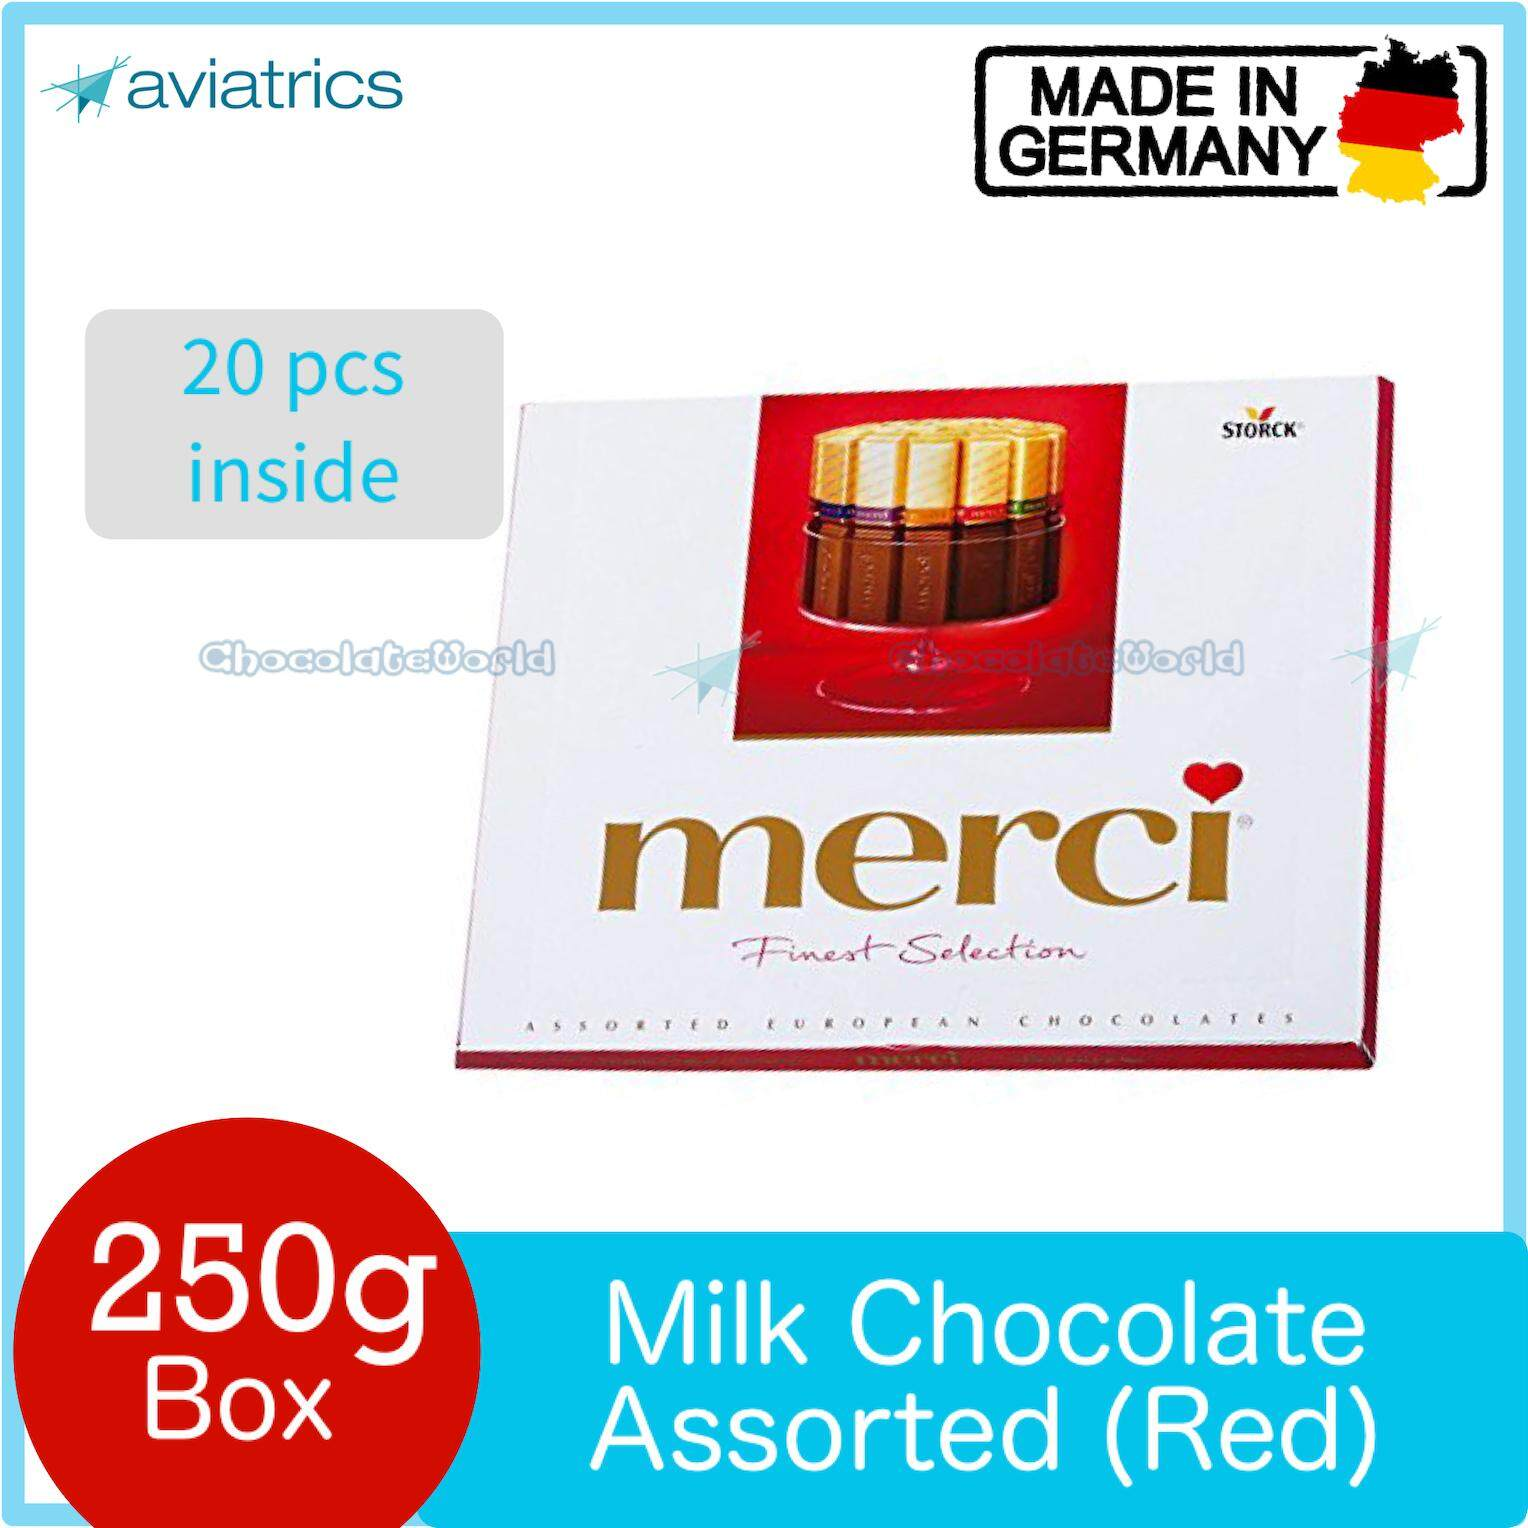 Merci Finest Selection Assorted European Milk Chocolate 250g Red (Made in Germany)